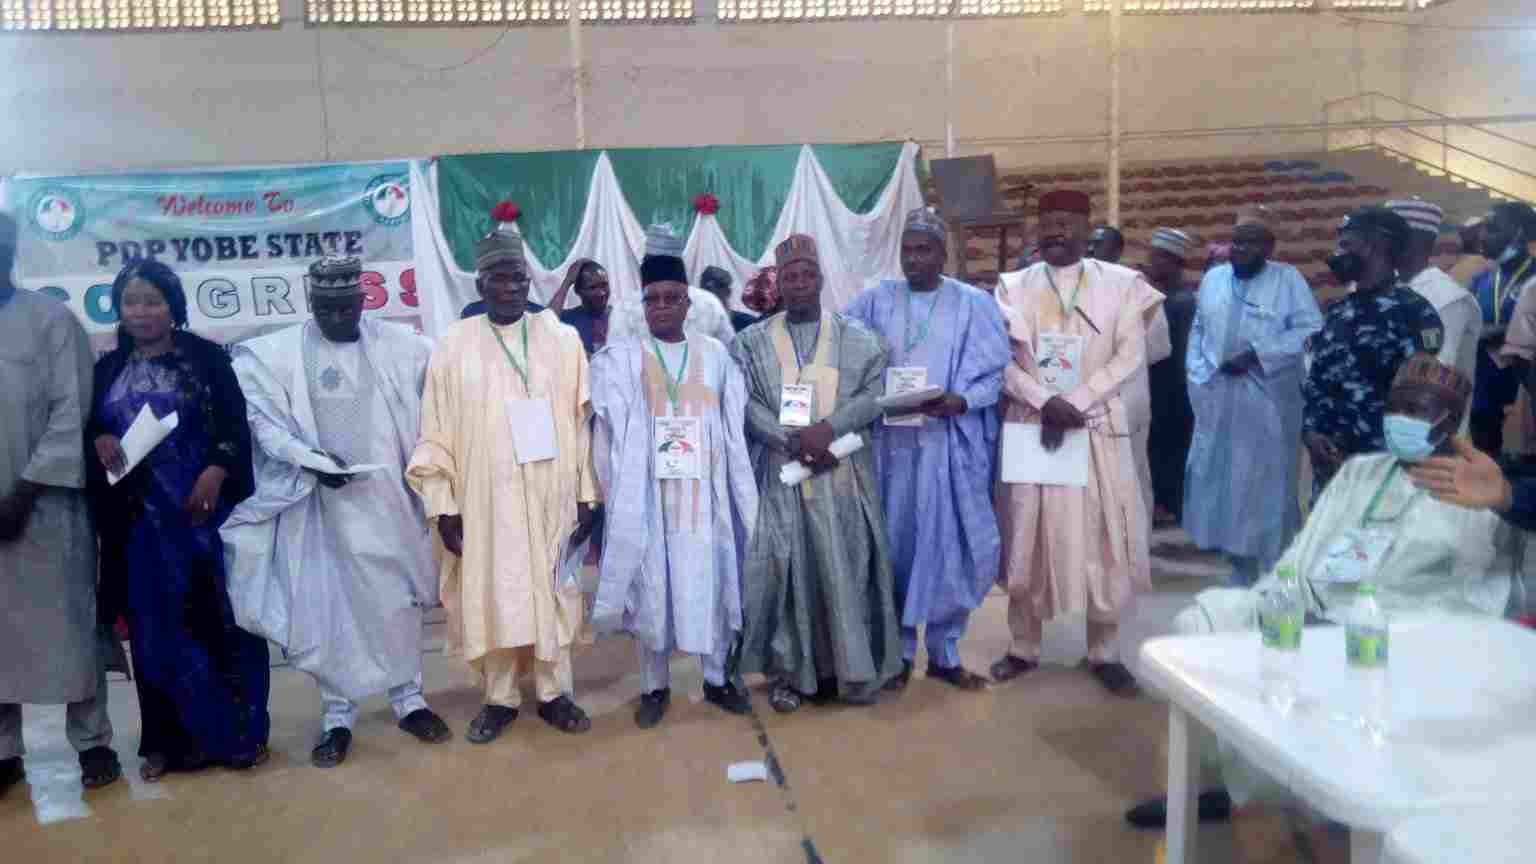 Yobe PDP holds congress, elects executives, after one year without Officials